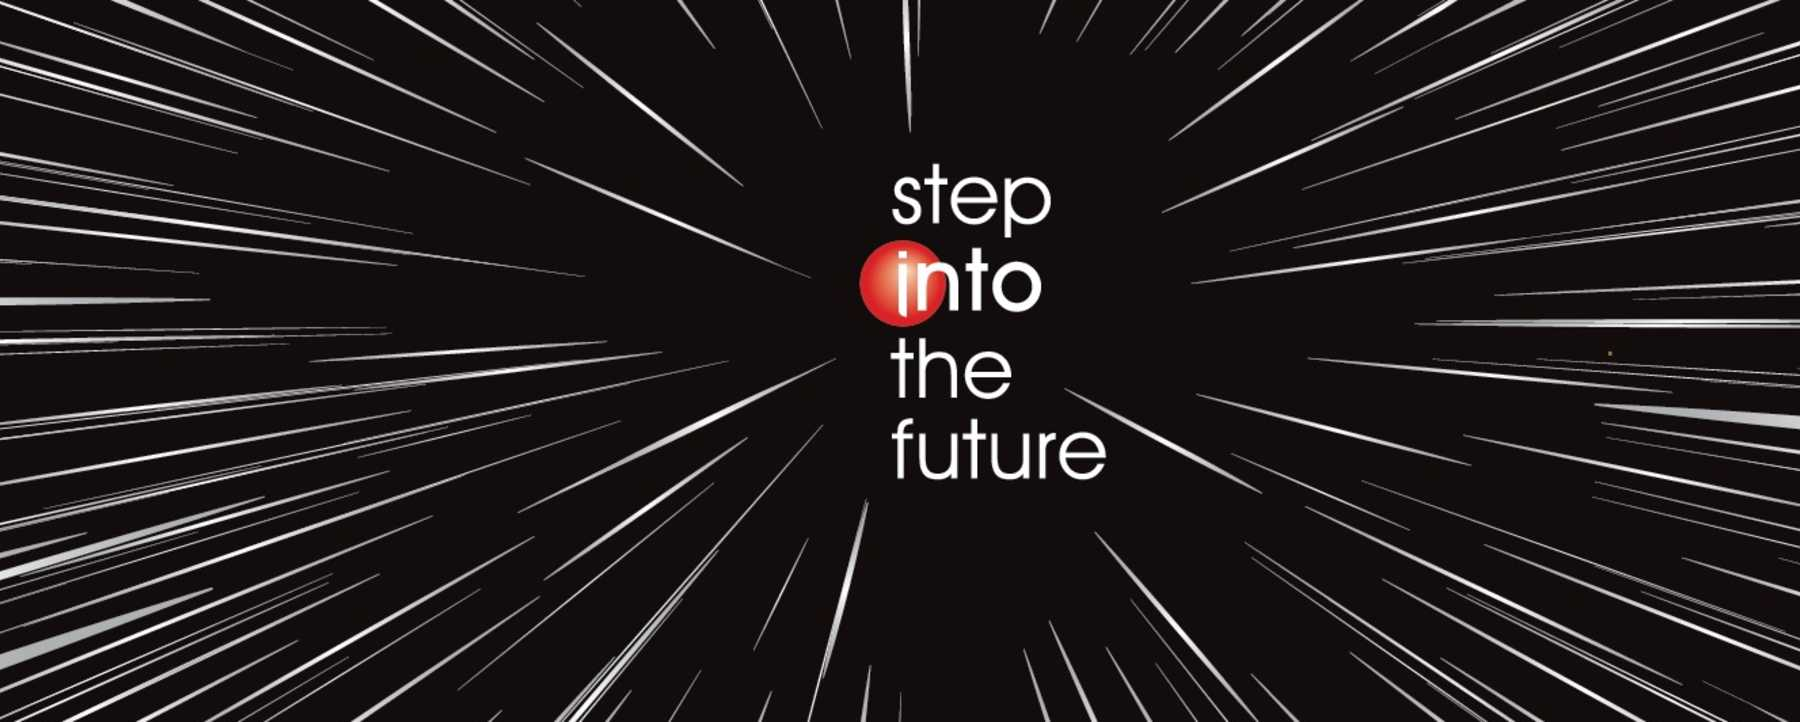 Step into the future with Info Salons